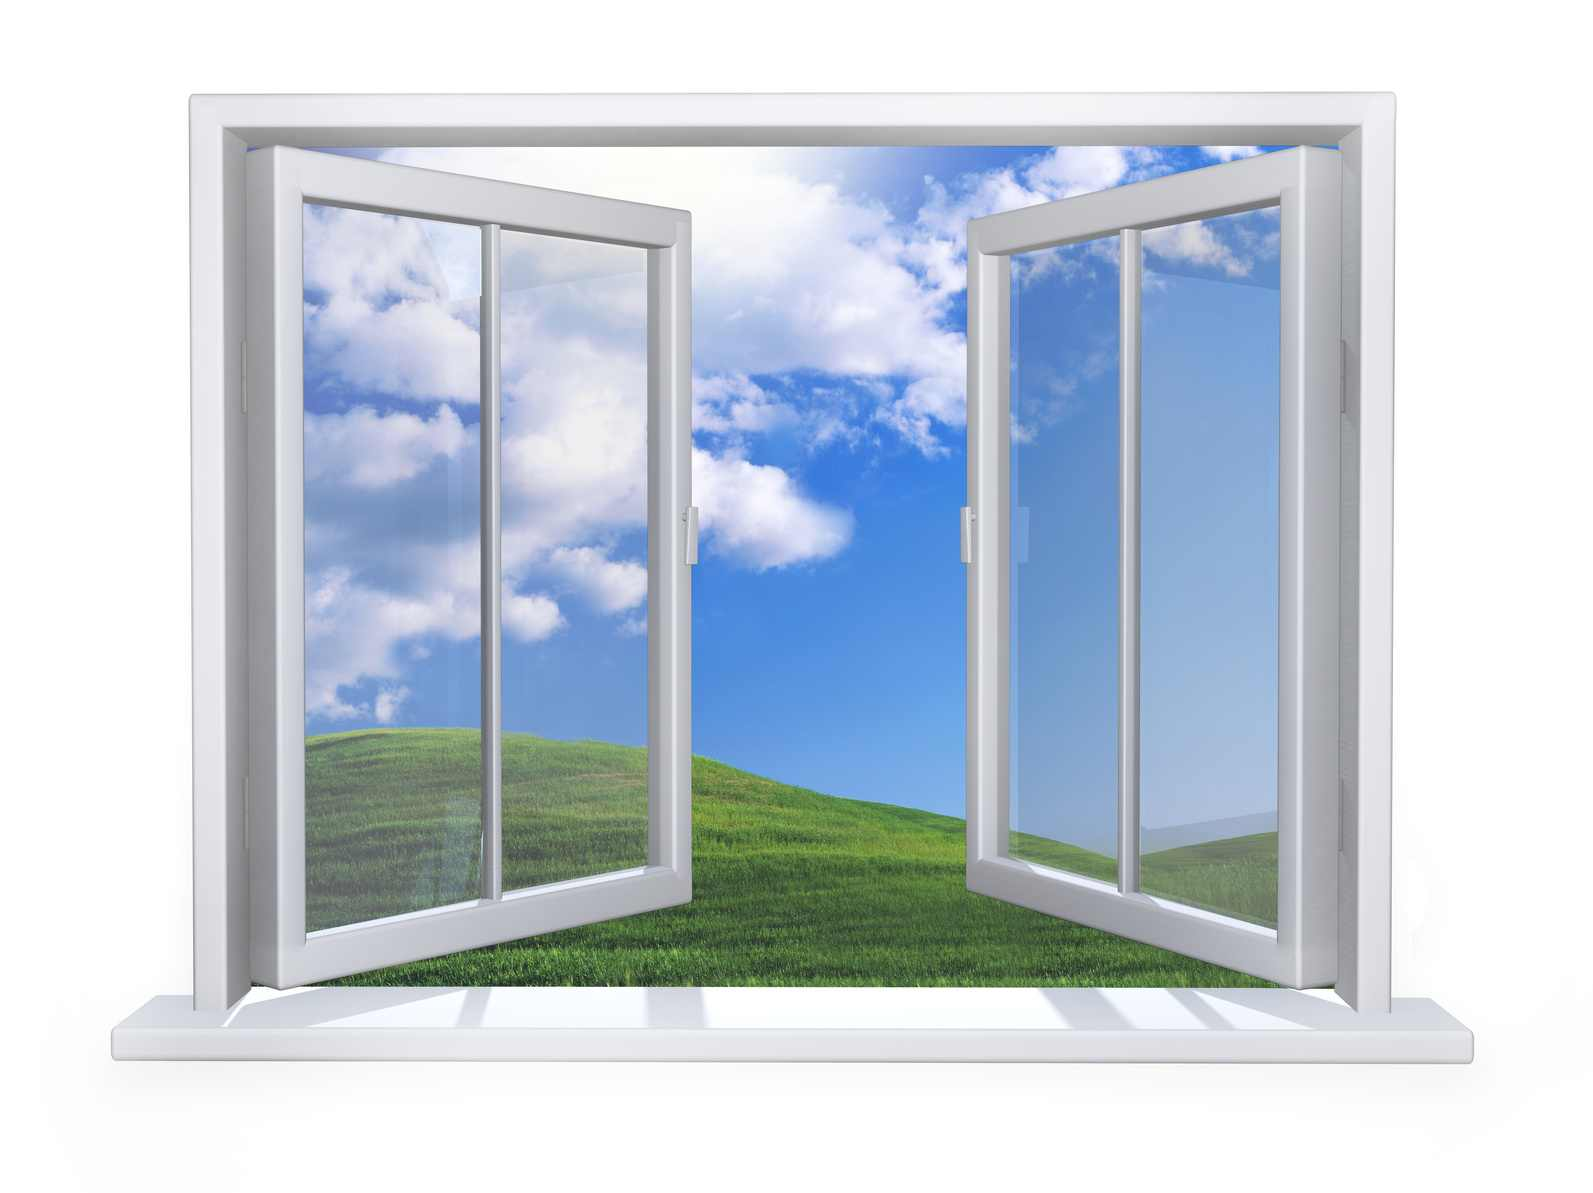 Closed Window Frame : Fenster fuer stahlgaragen omicroner garagen